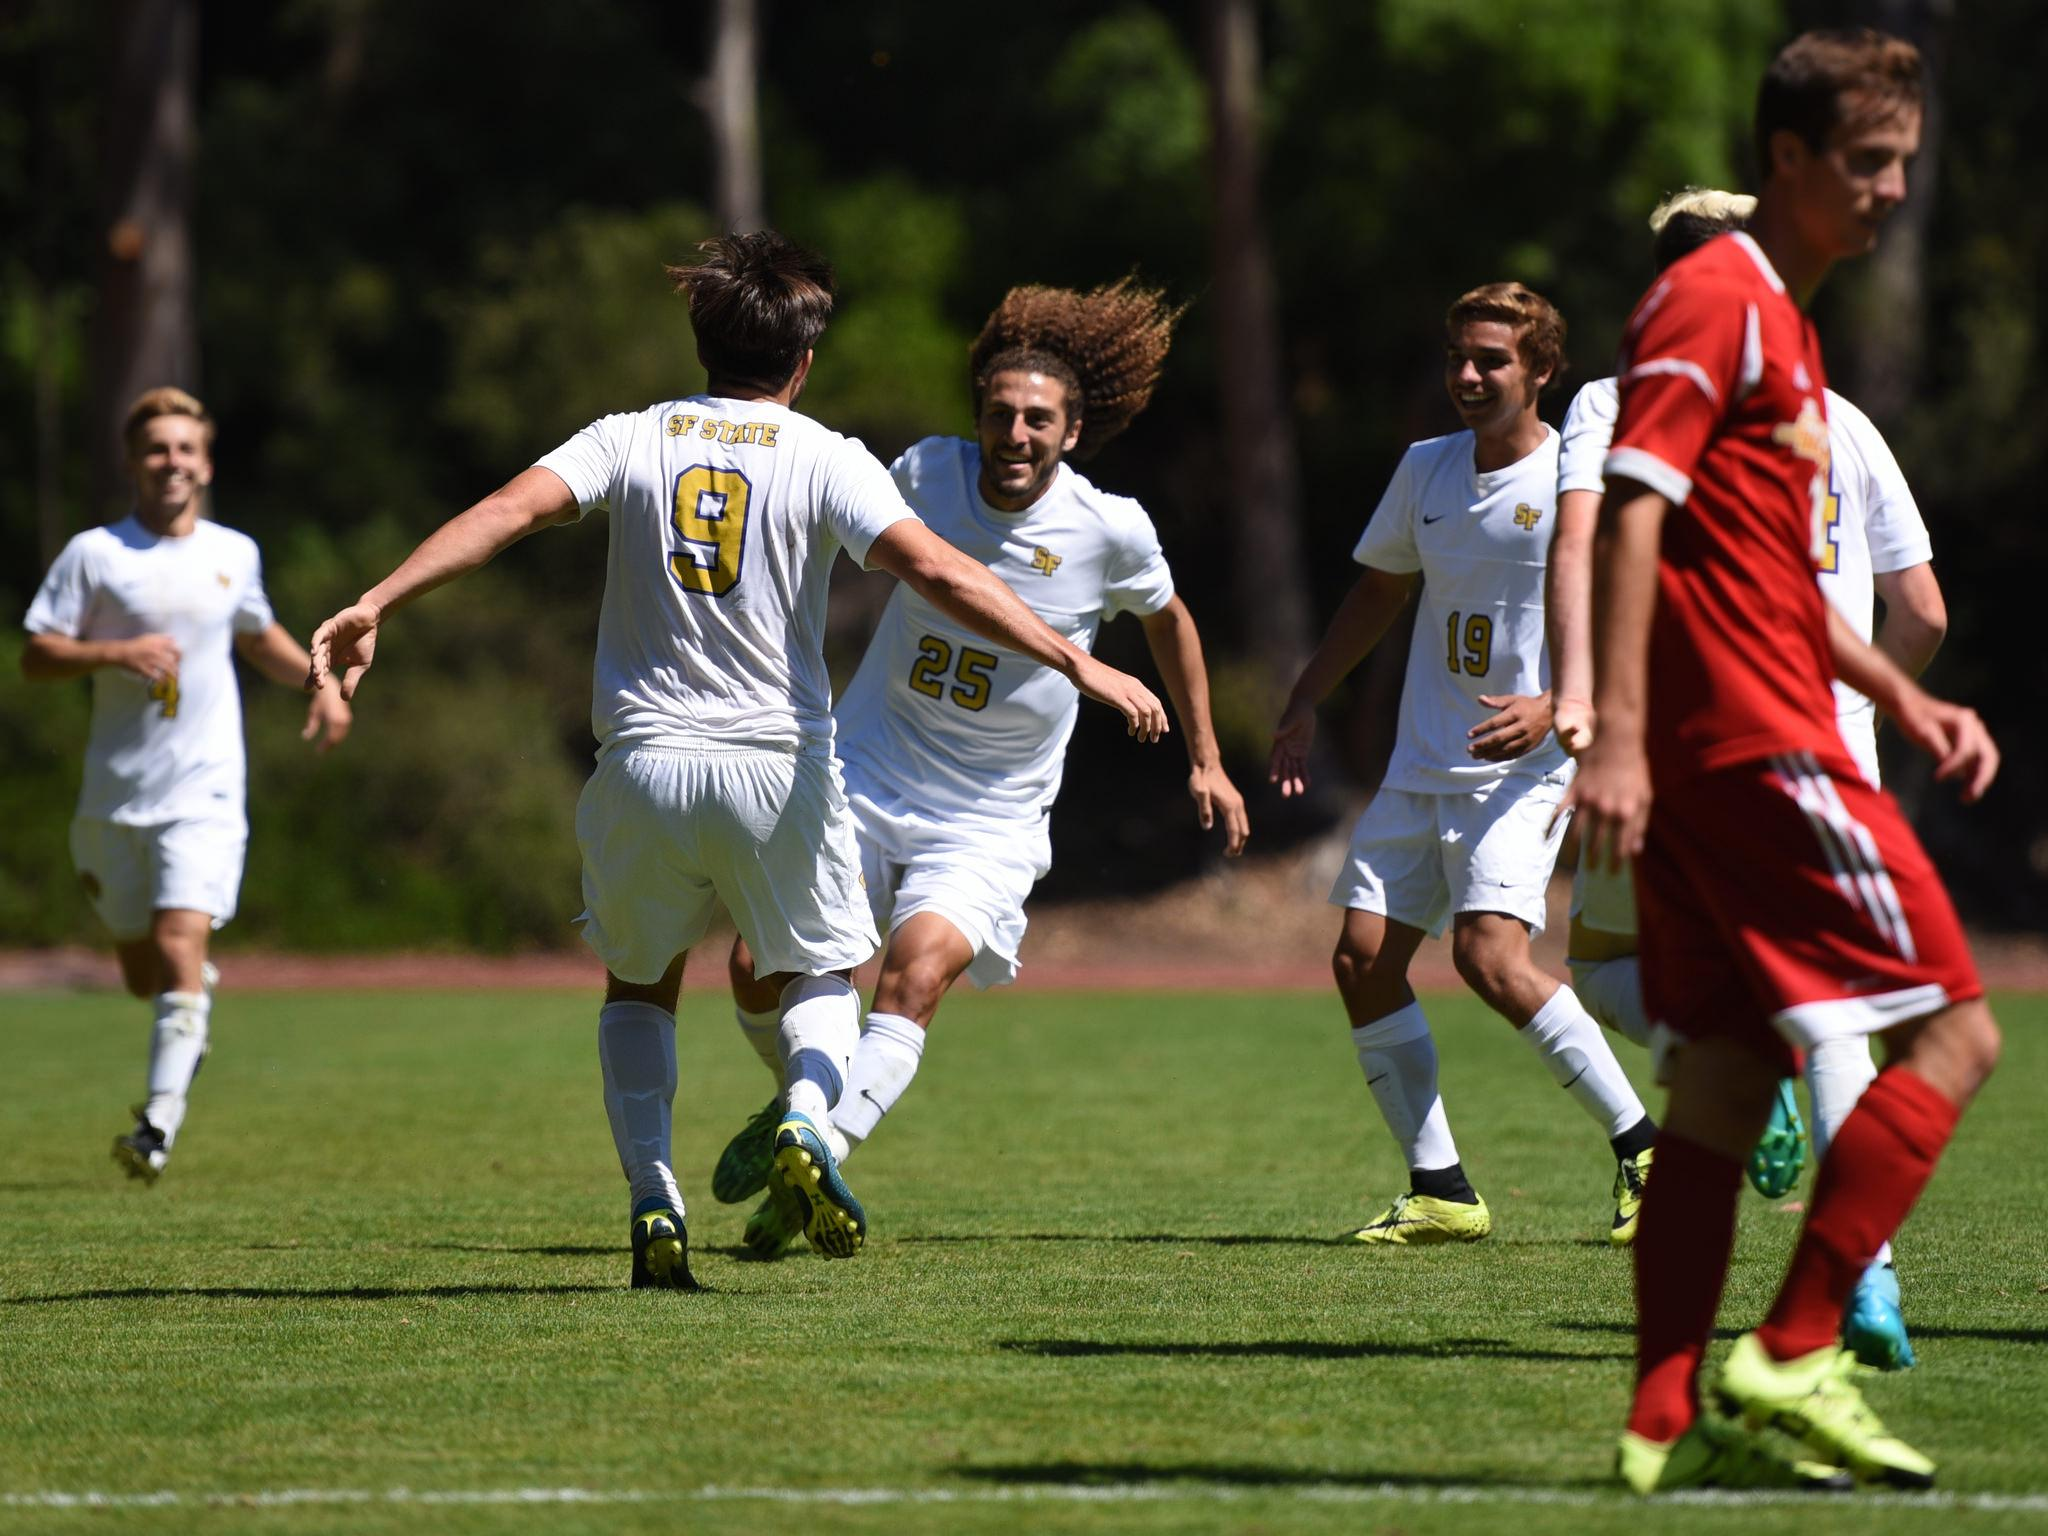 Mens soccer team scores win during first game of the season